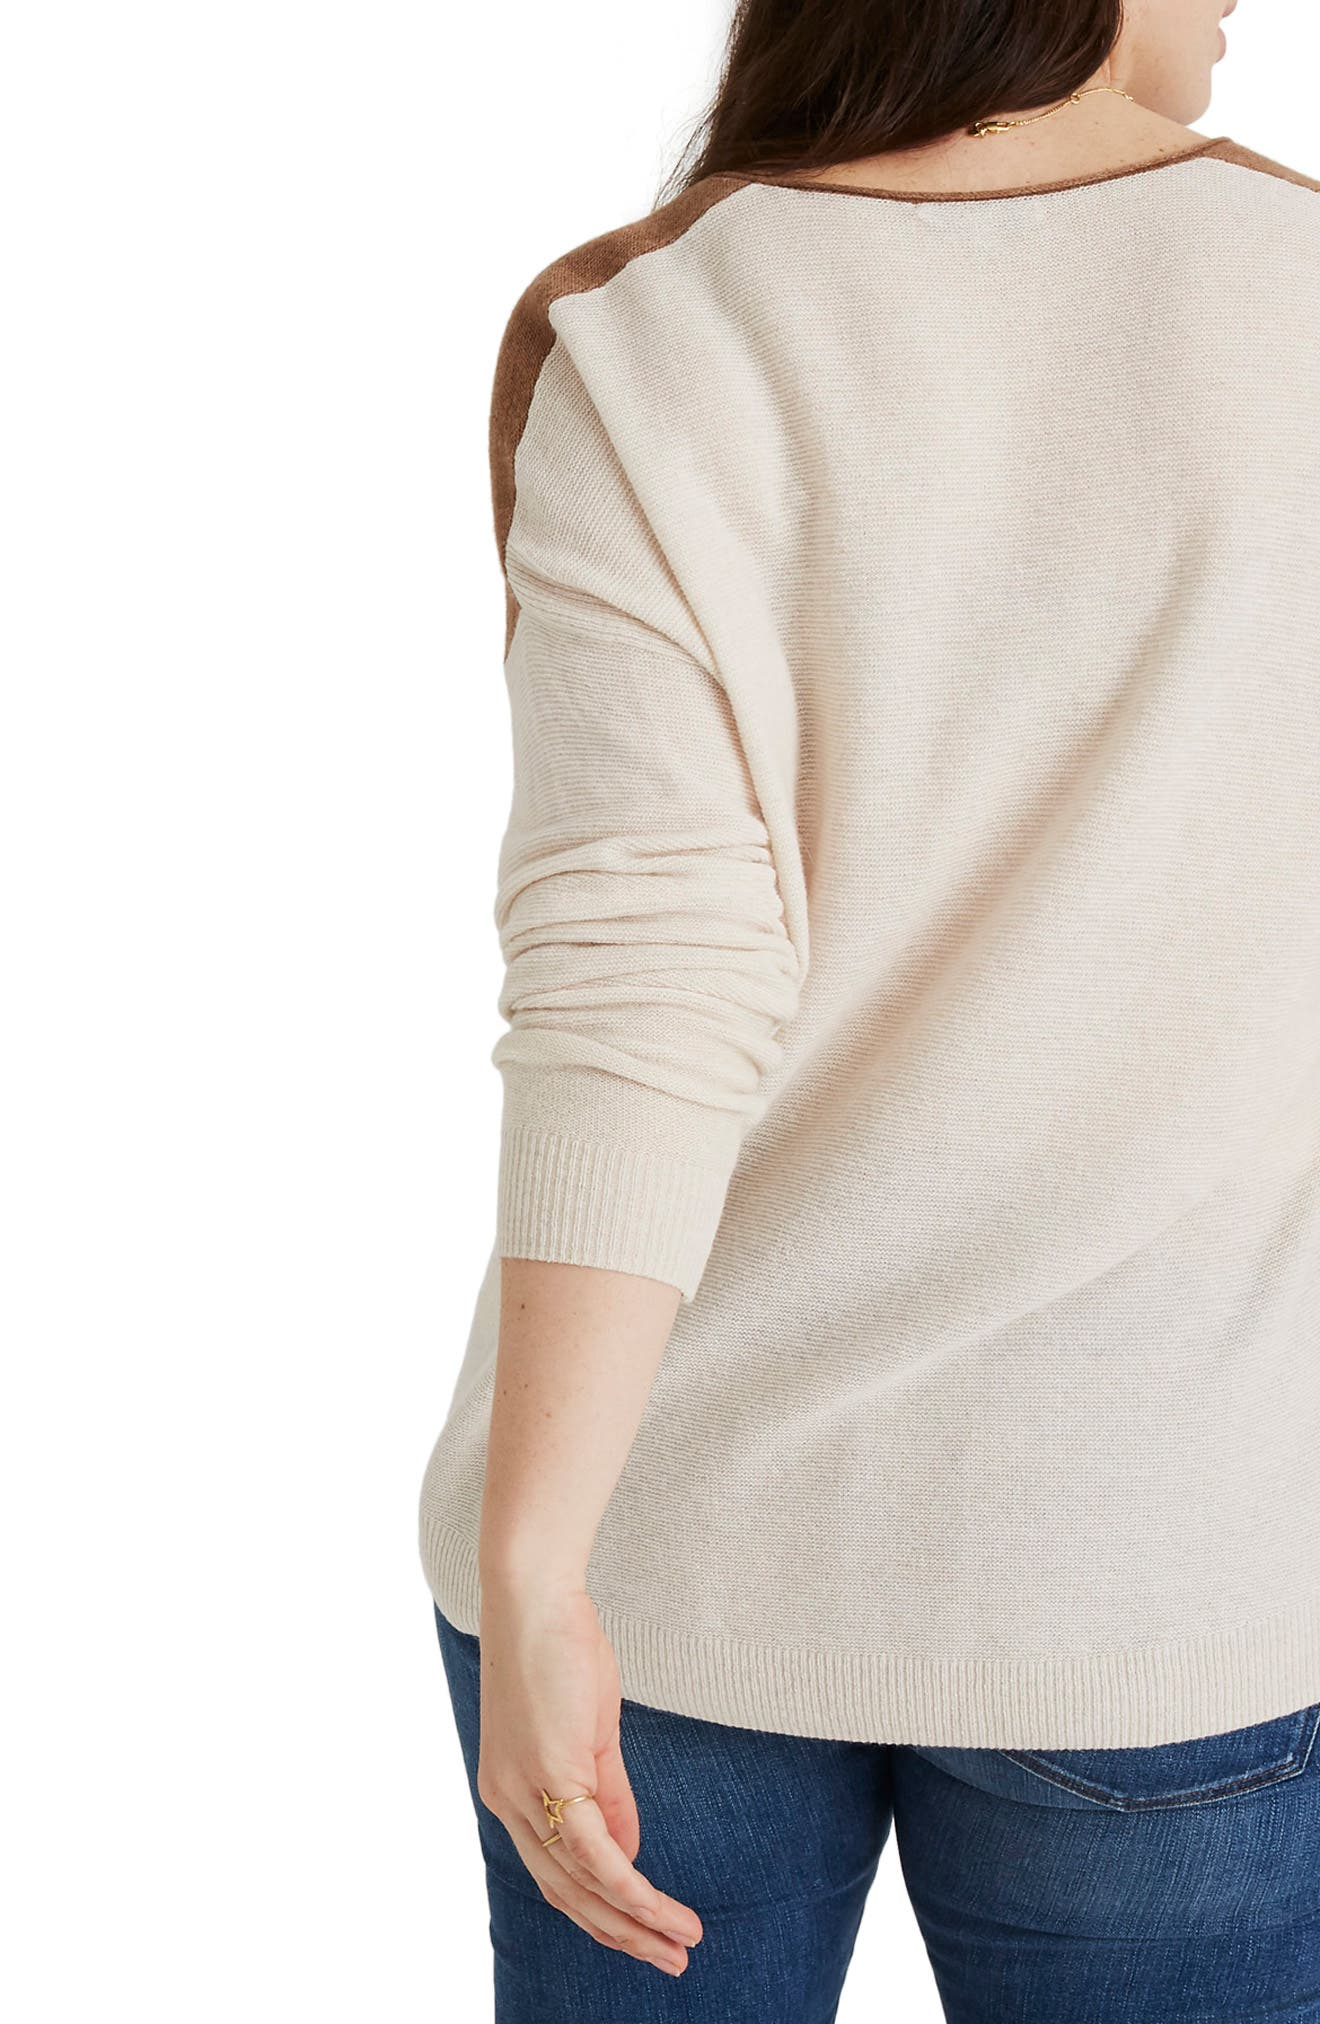 MADEWELL, Kimball Colorblock Sweater, Alternate thumbnail 7, color, 021